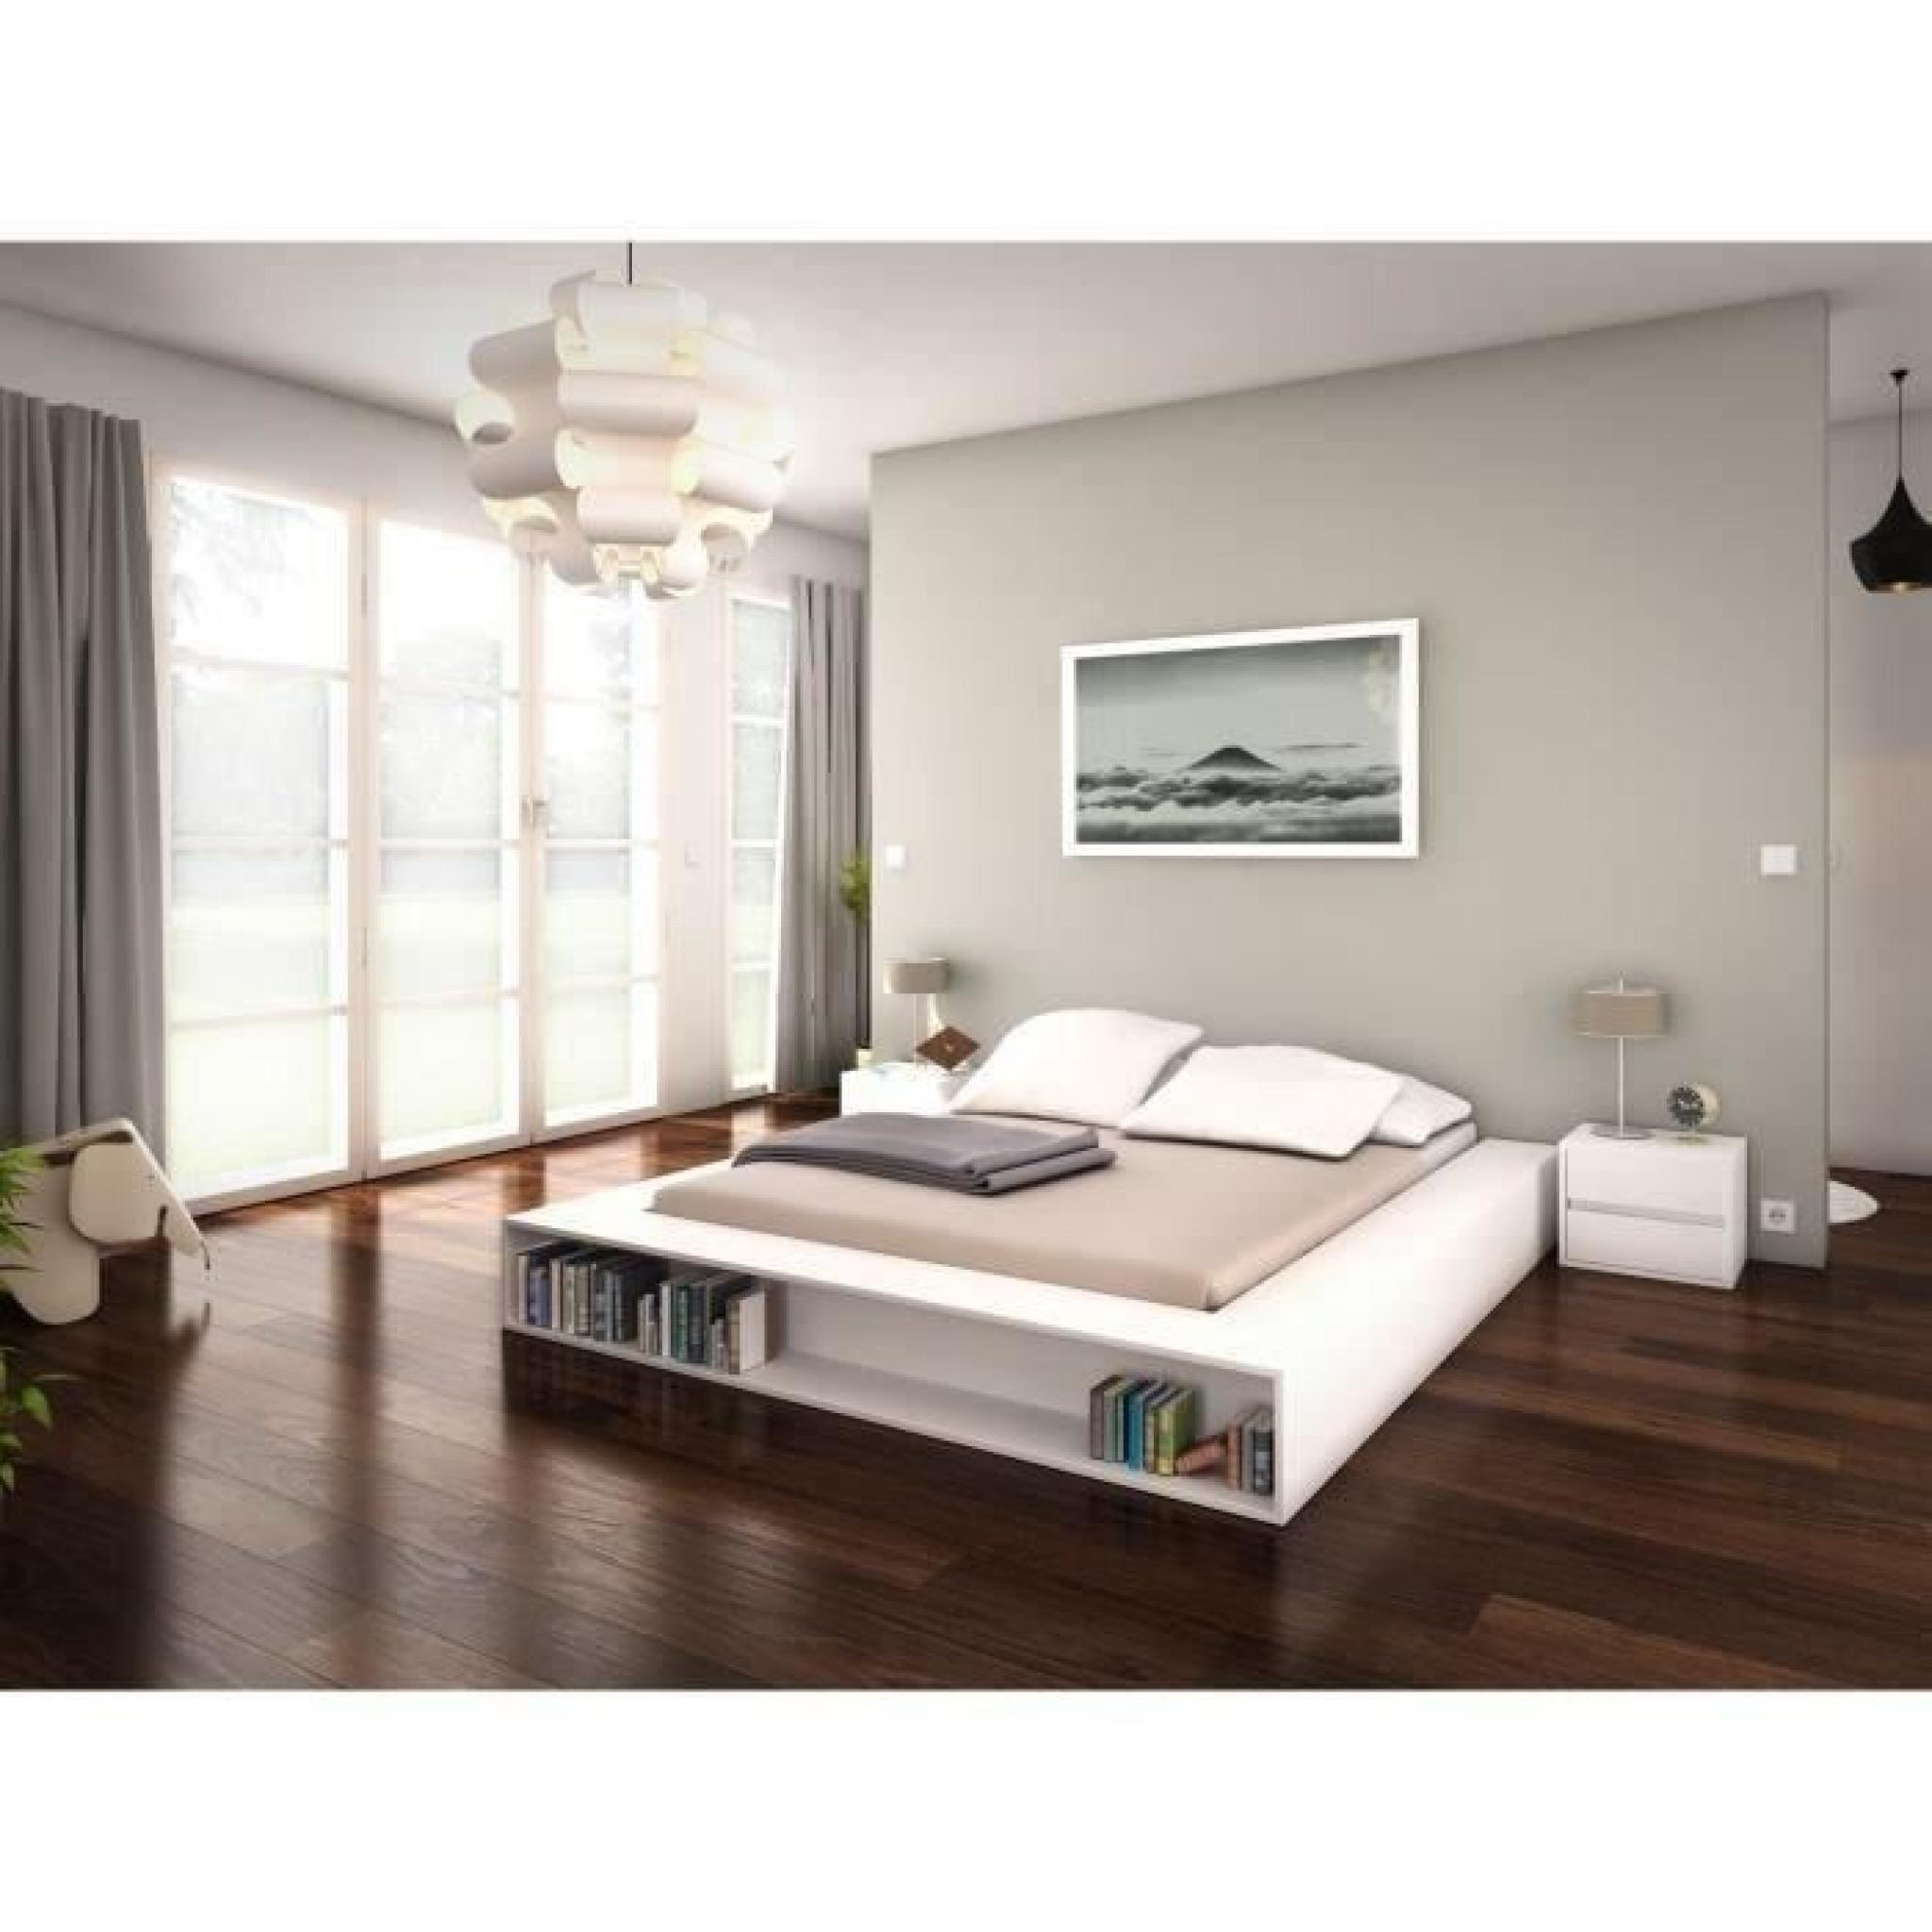 zen lit adulte 2 coffres lat raux 140x200 blanc achat vente lit pas cher couleur et. Black Bedroom Furniture Sets. Home Design Ideas